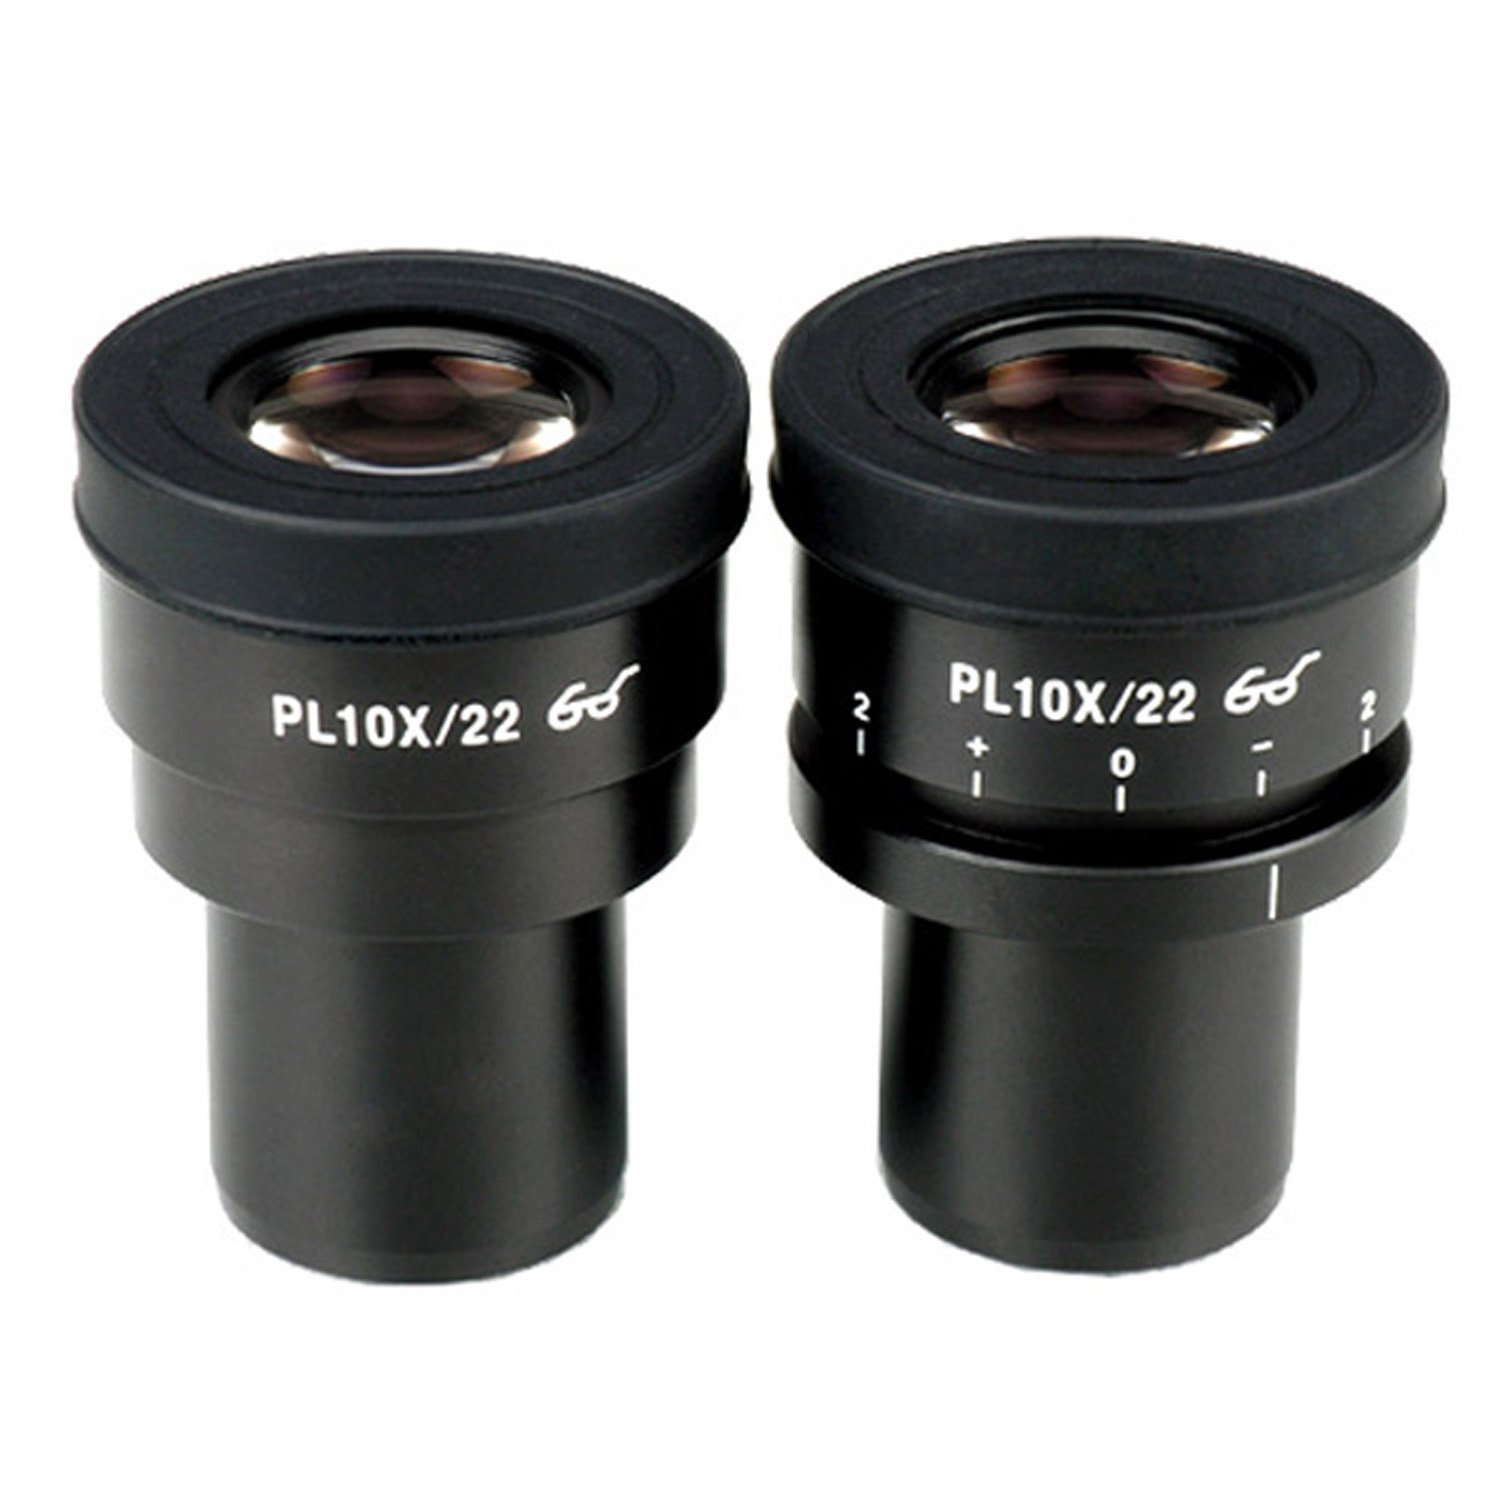 AmScope EP10X30PL 10X Focus Adjustable Plan Eyepieces for Zeiss, Leica and Nikon (30mm)